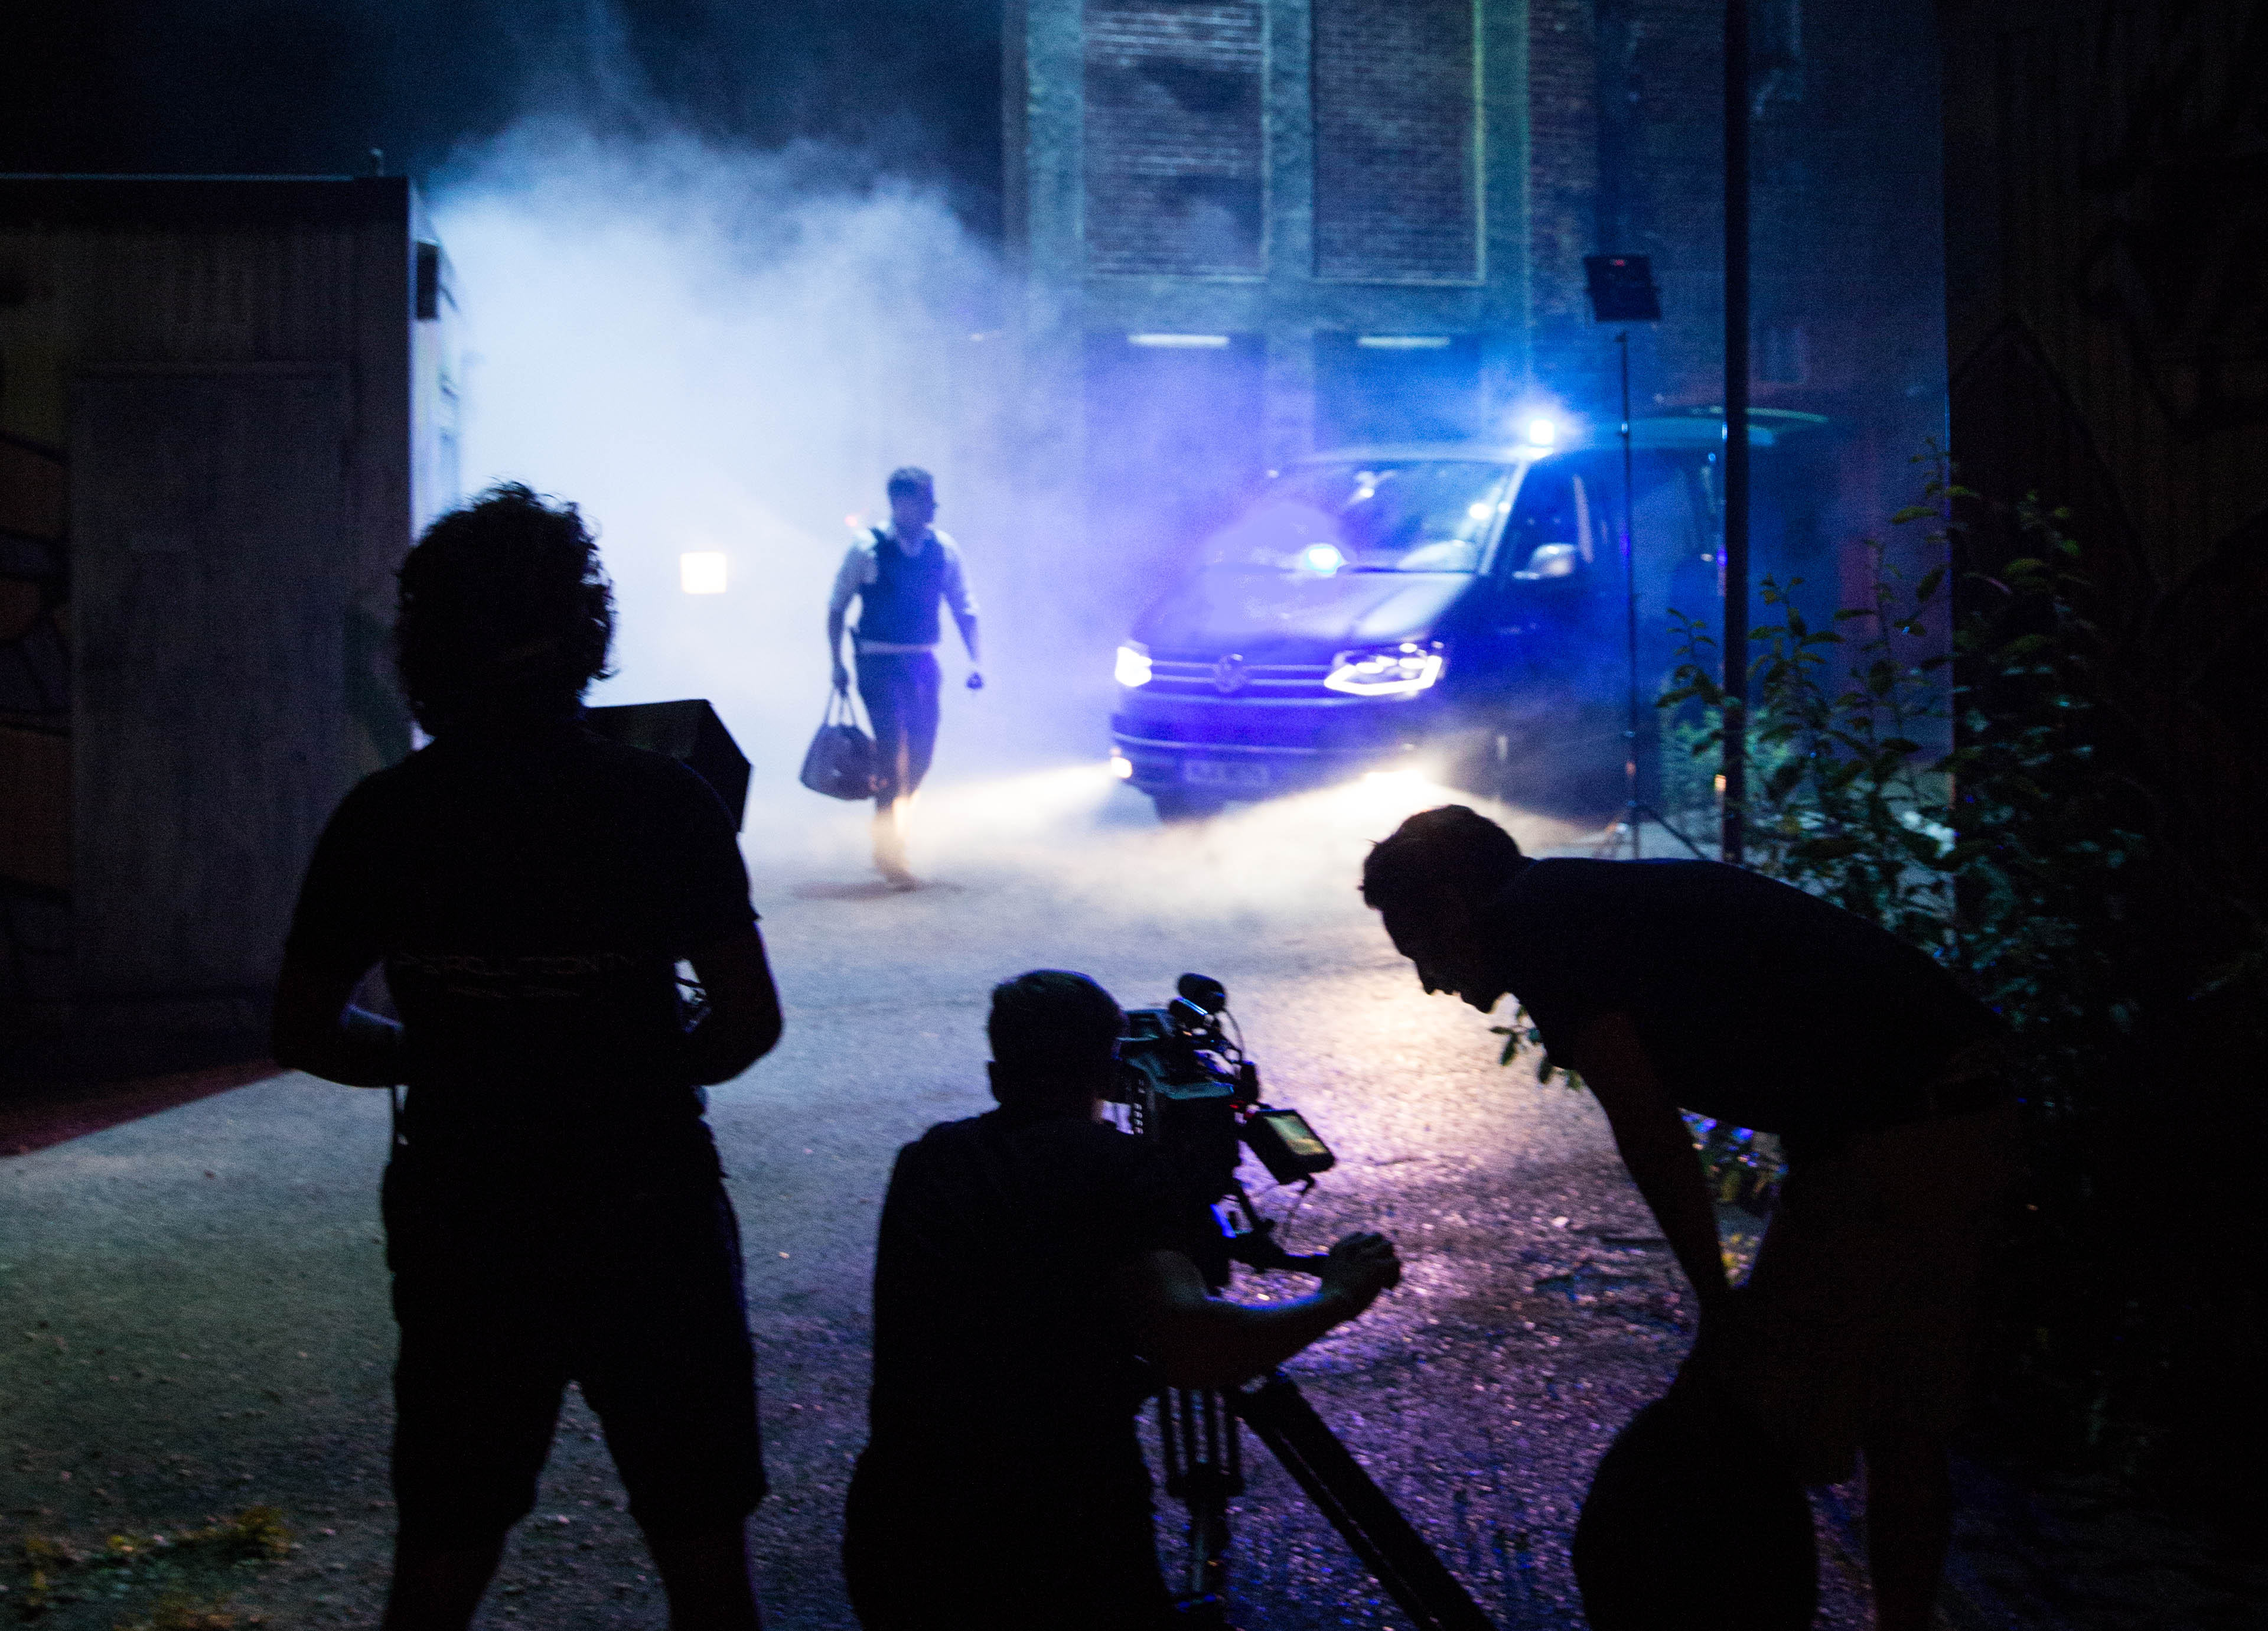 Making of LED drohne setlife tv crew lied hexacopter moving lights munich bavaria aerial drone pilot munich germany